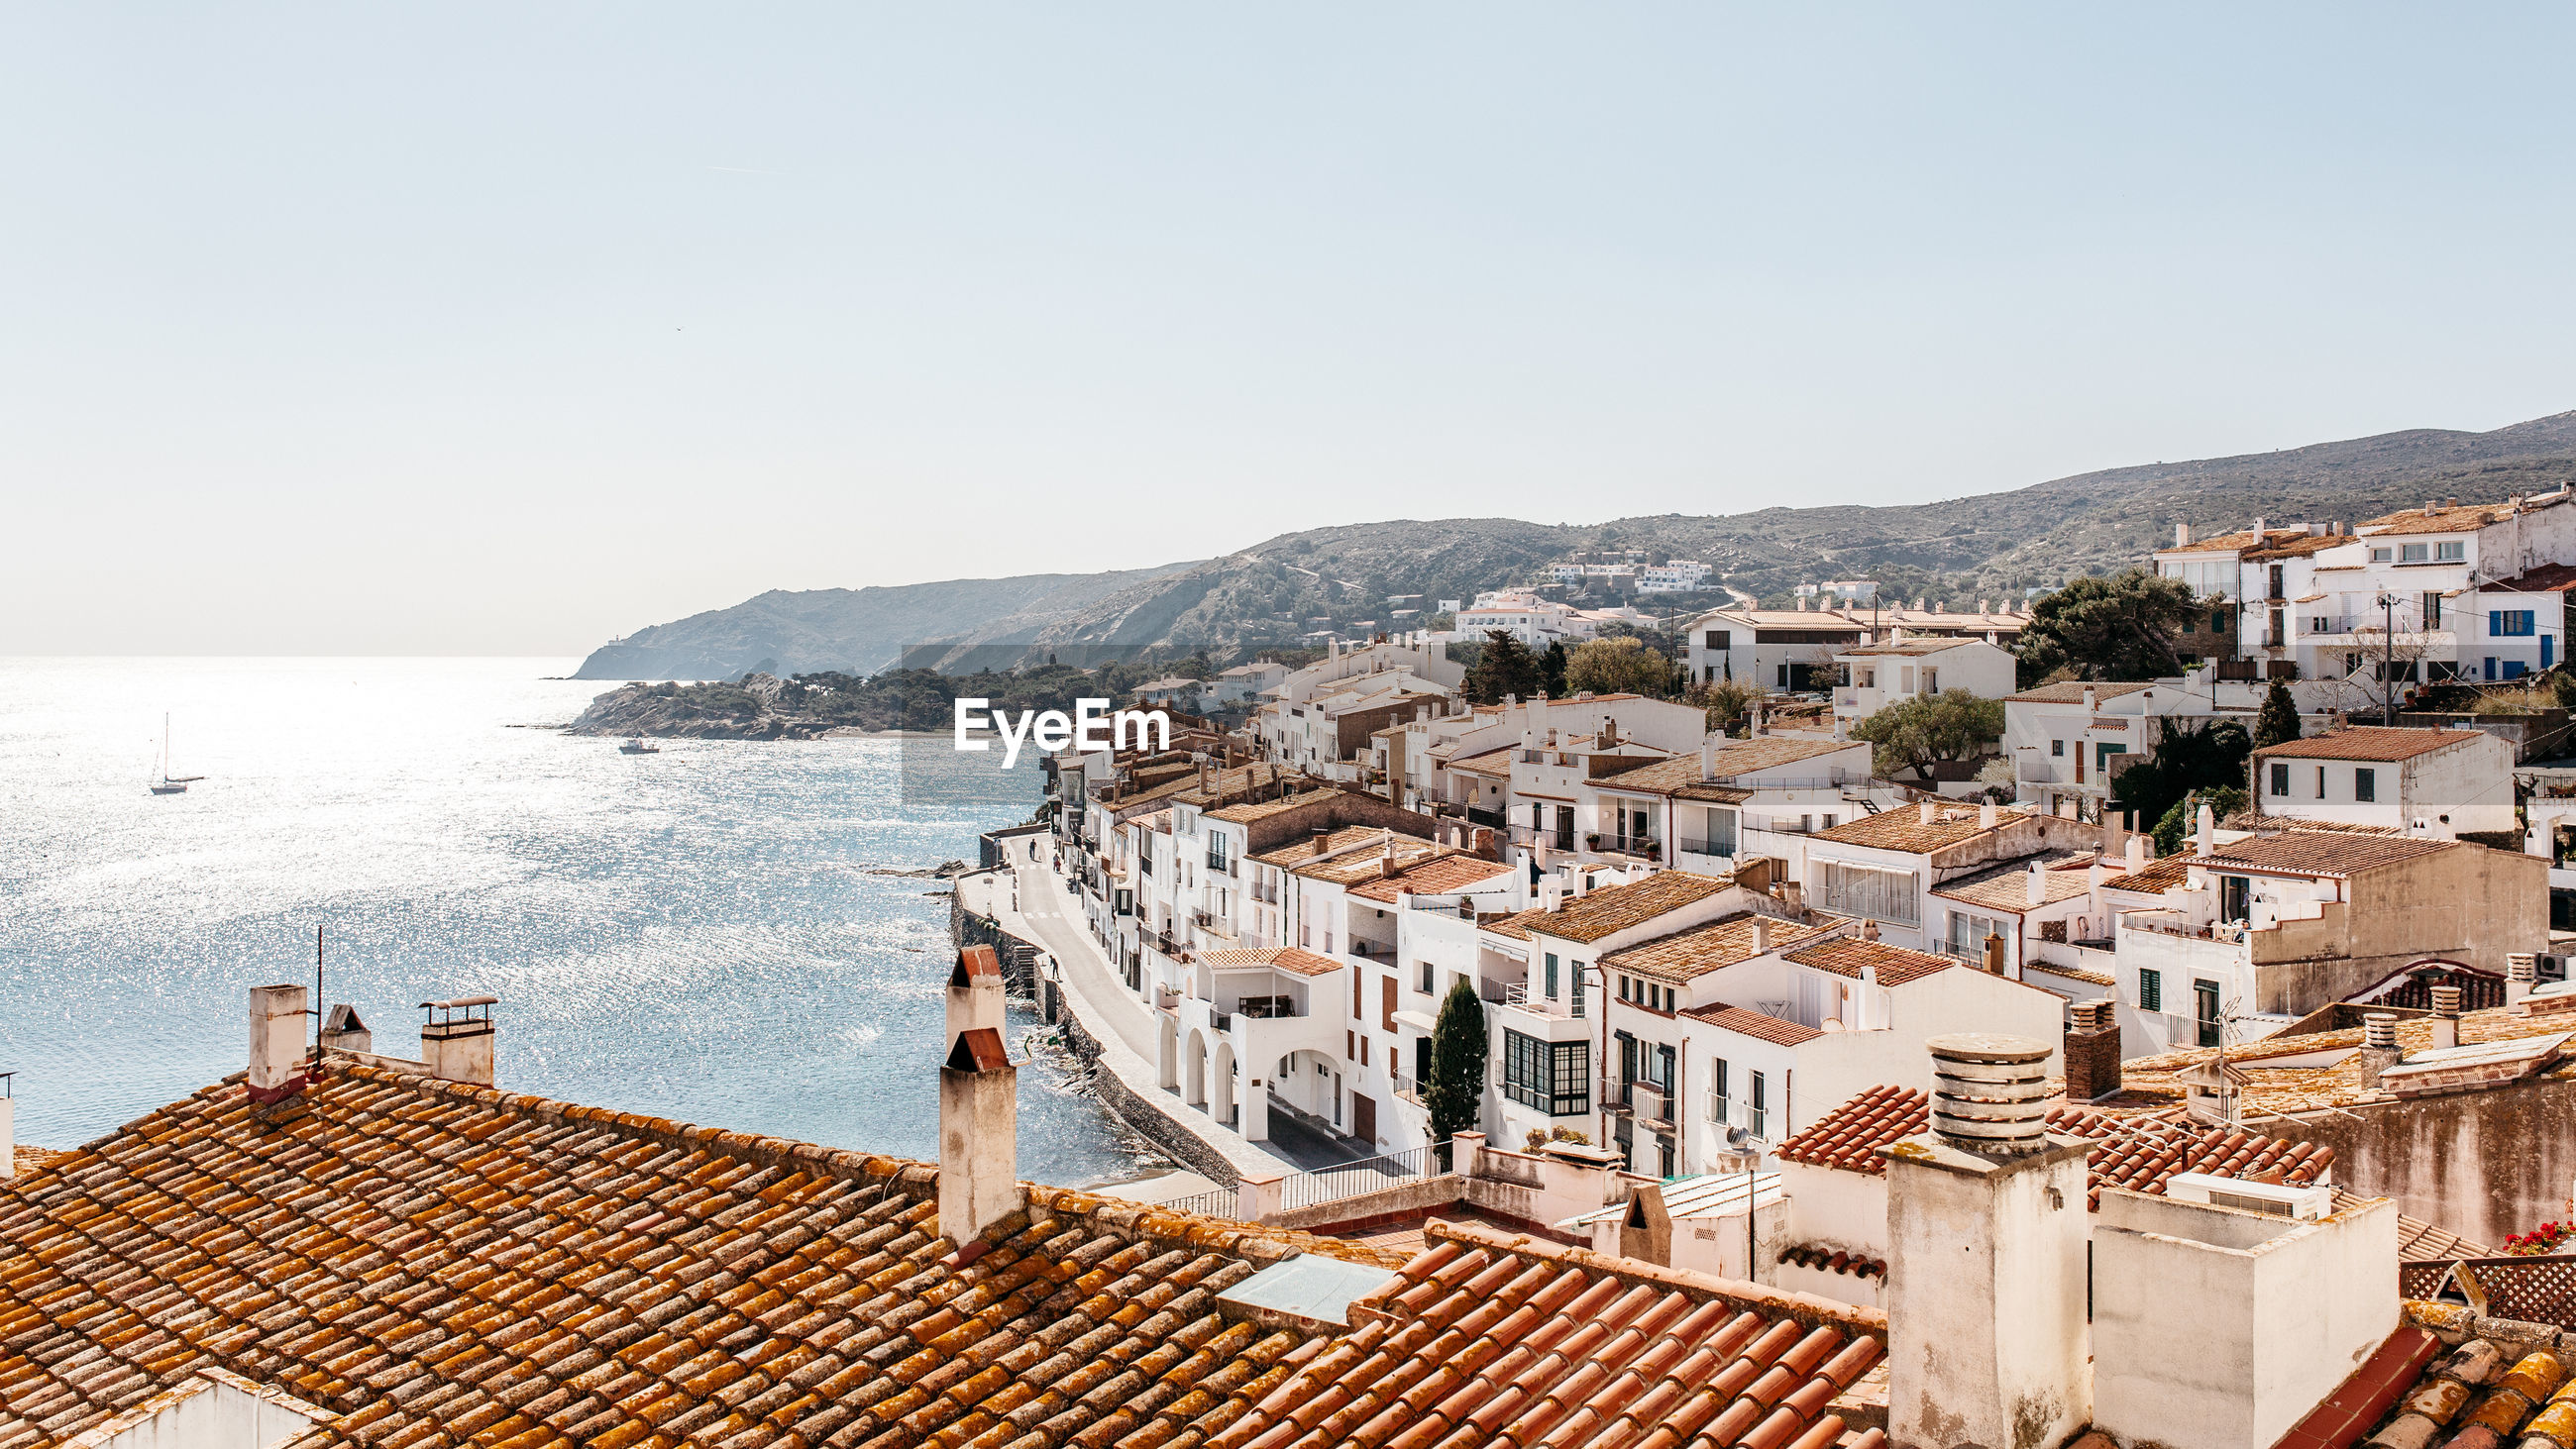 VIEW OF TOWN BY SEA AGAINST CLEAR SKY